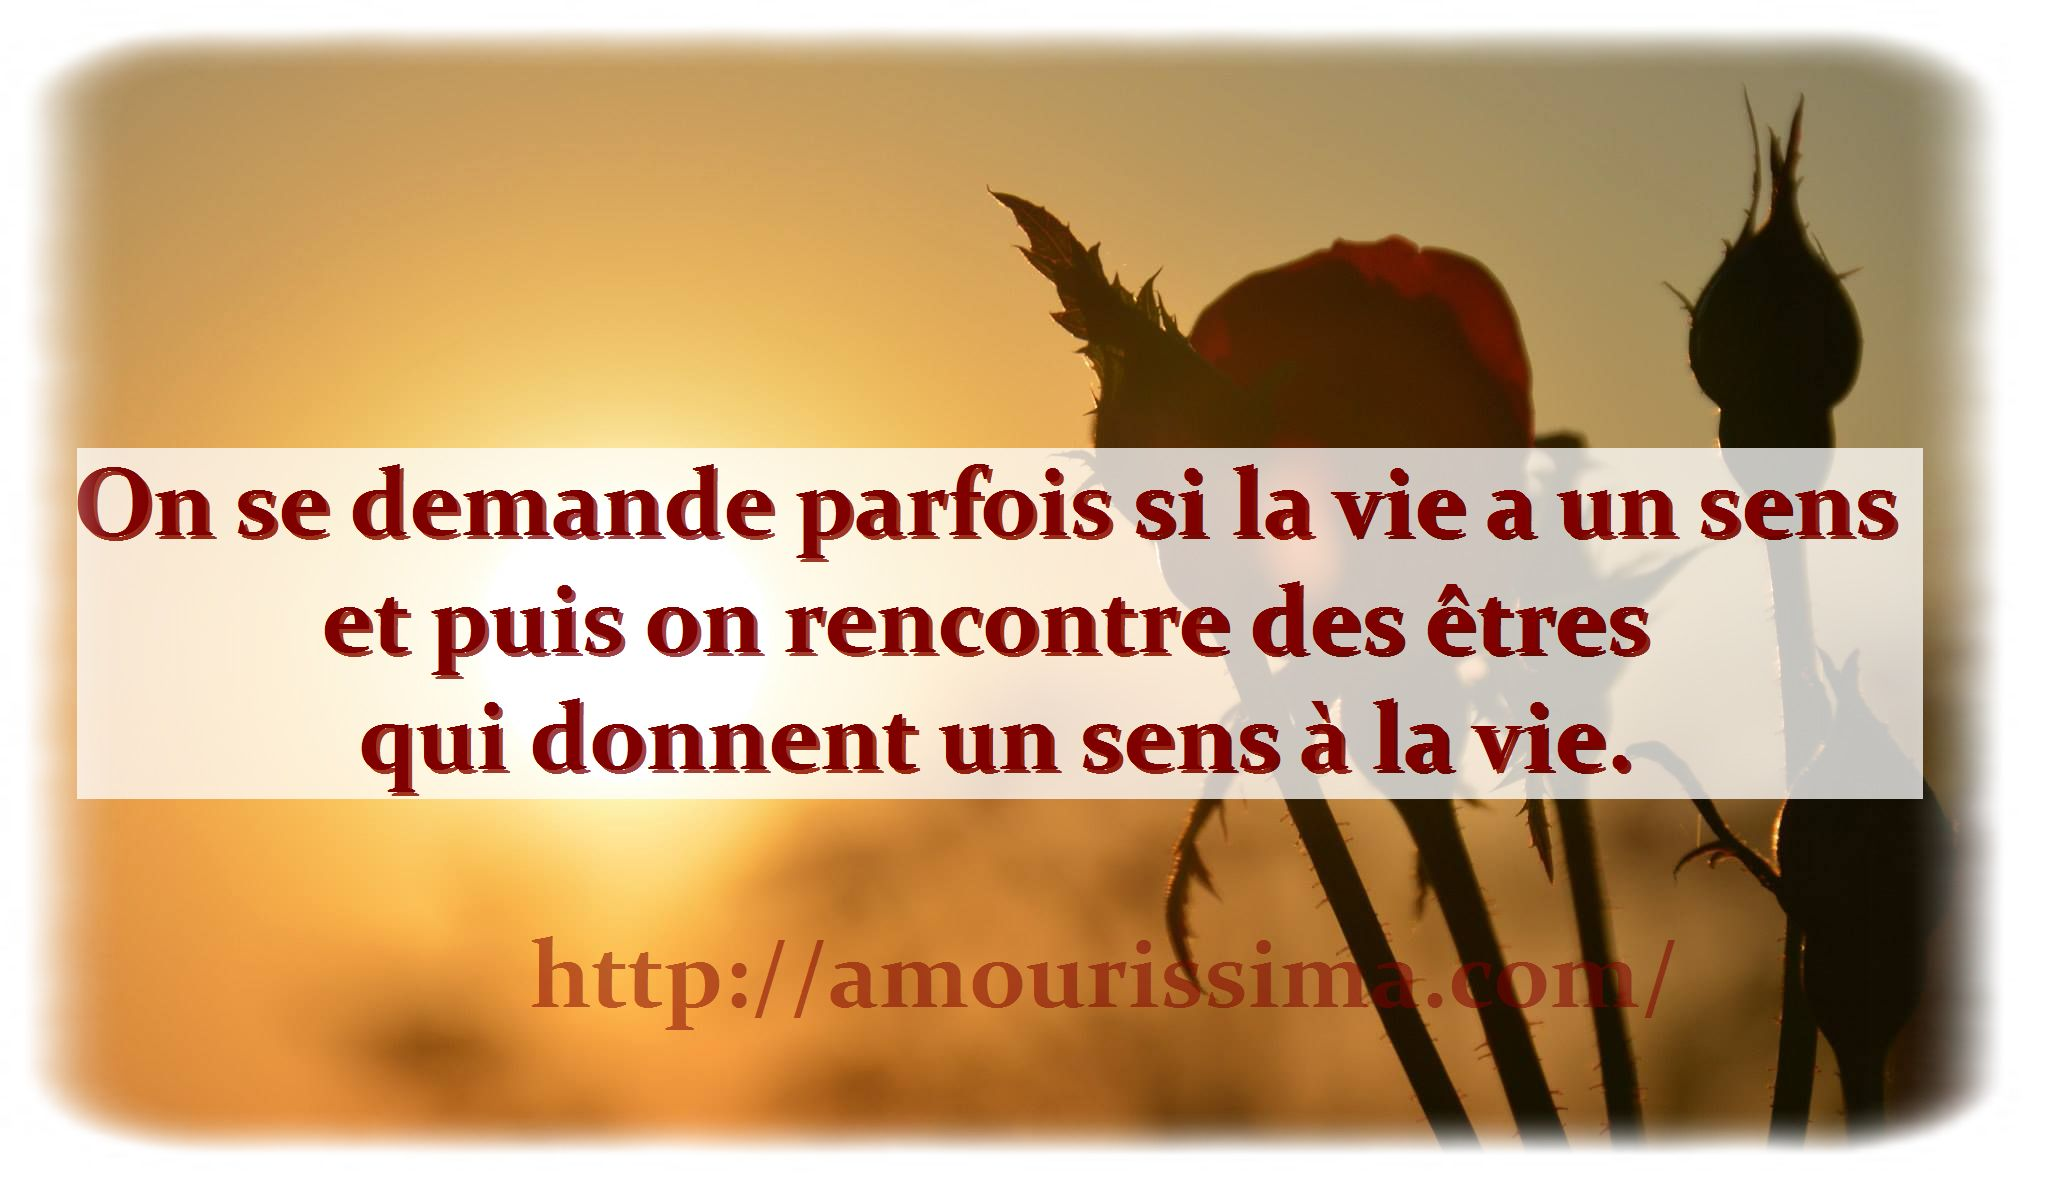 http://amourissima.com/wp-content/uploads/2016/09/phrase-d-amour.jpg